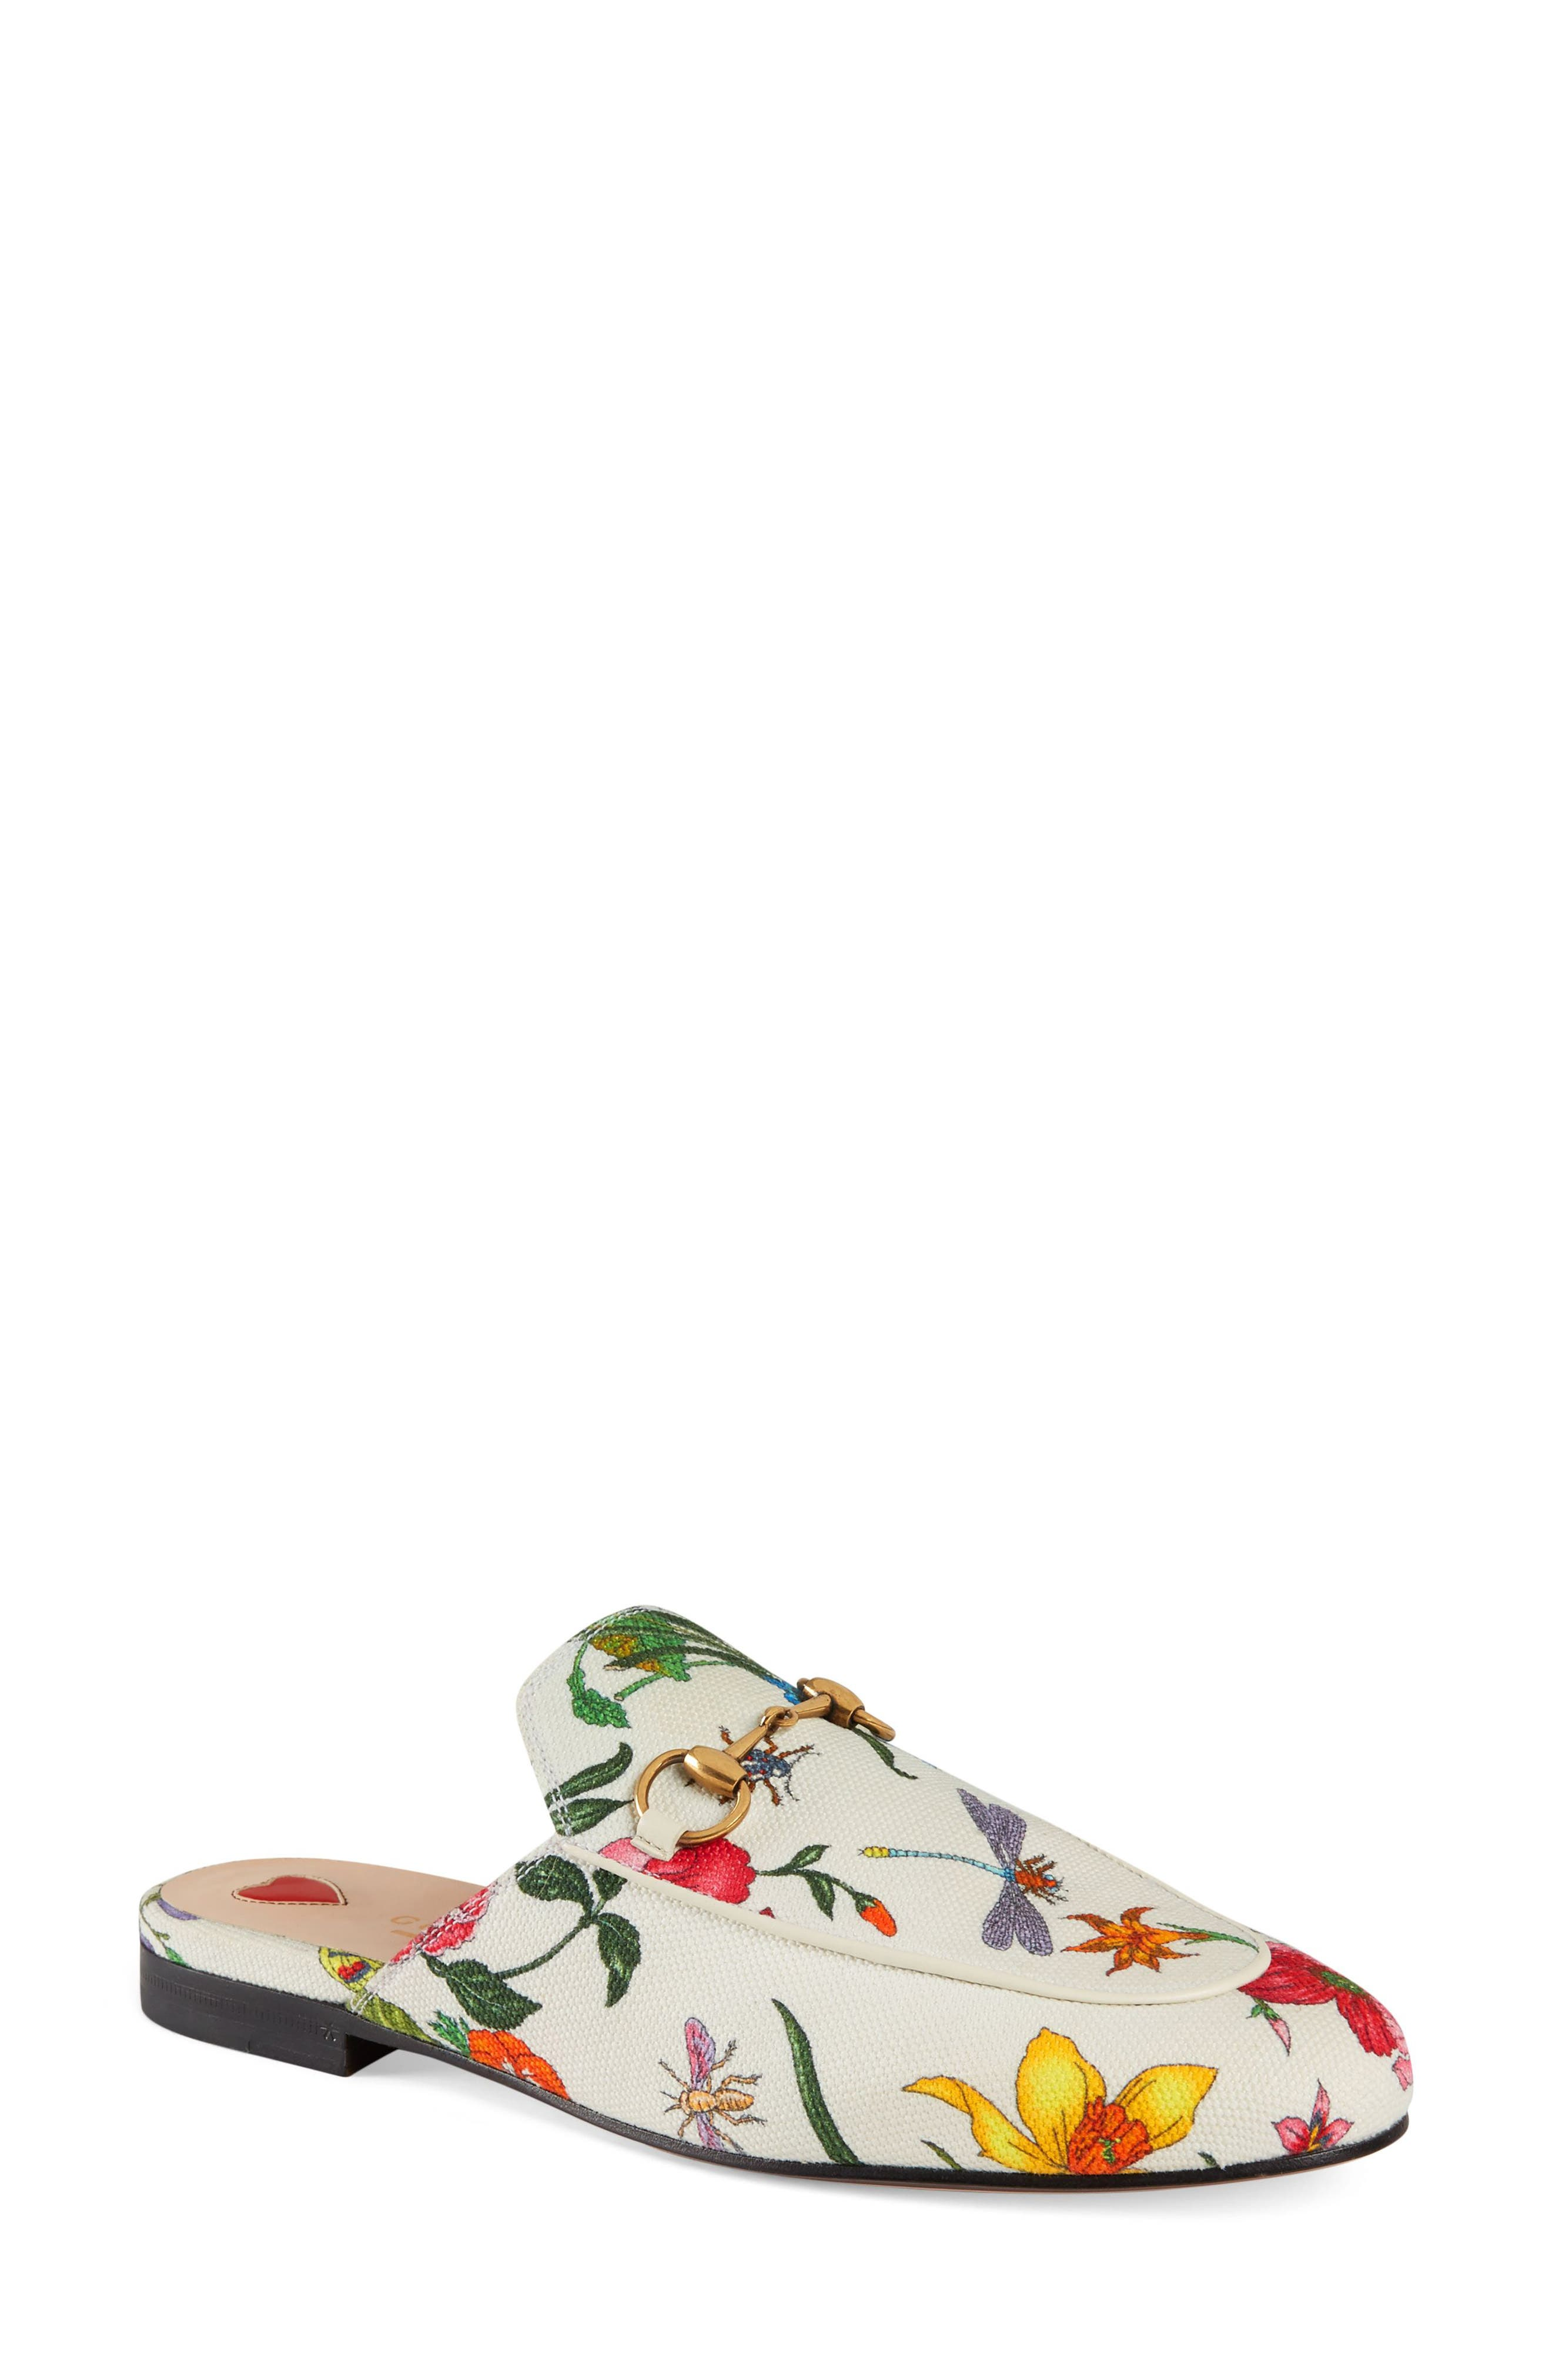 Princetown Loafer Mule,                         Main,                         color, WHITE FLORAL